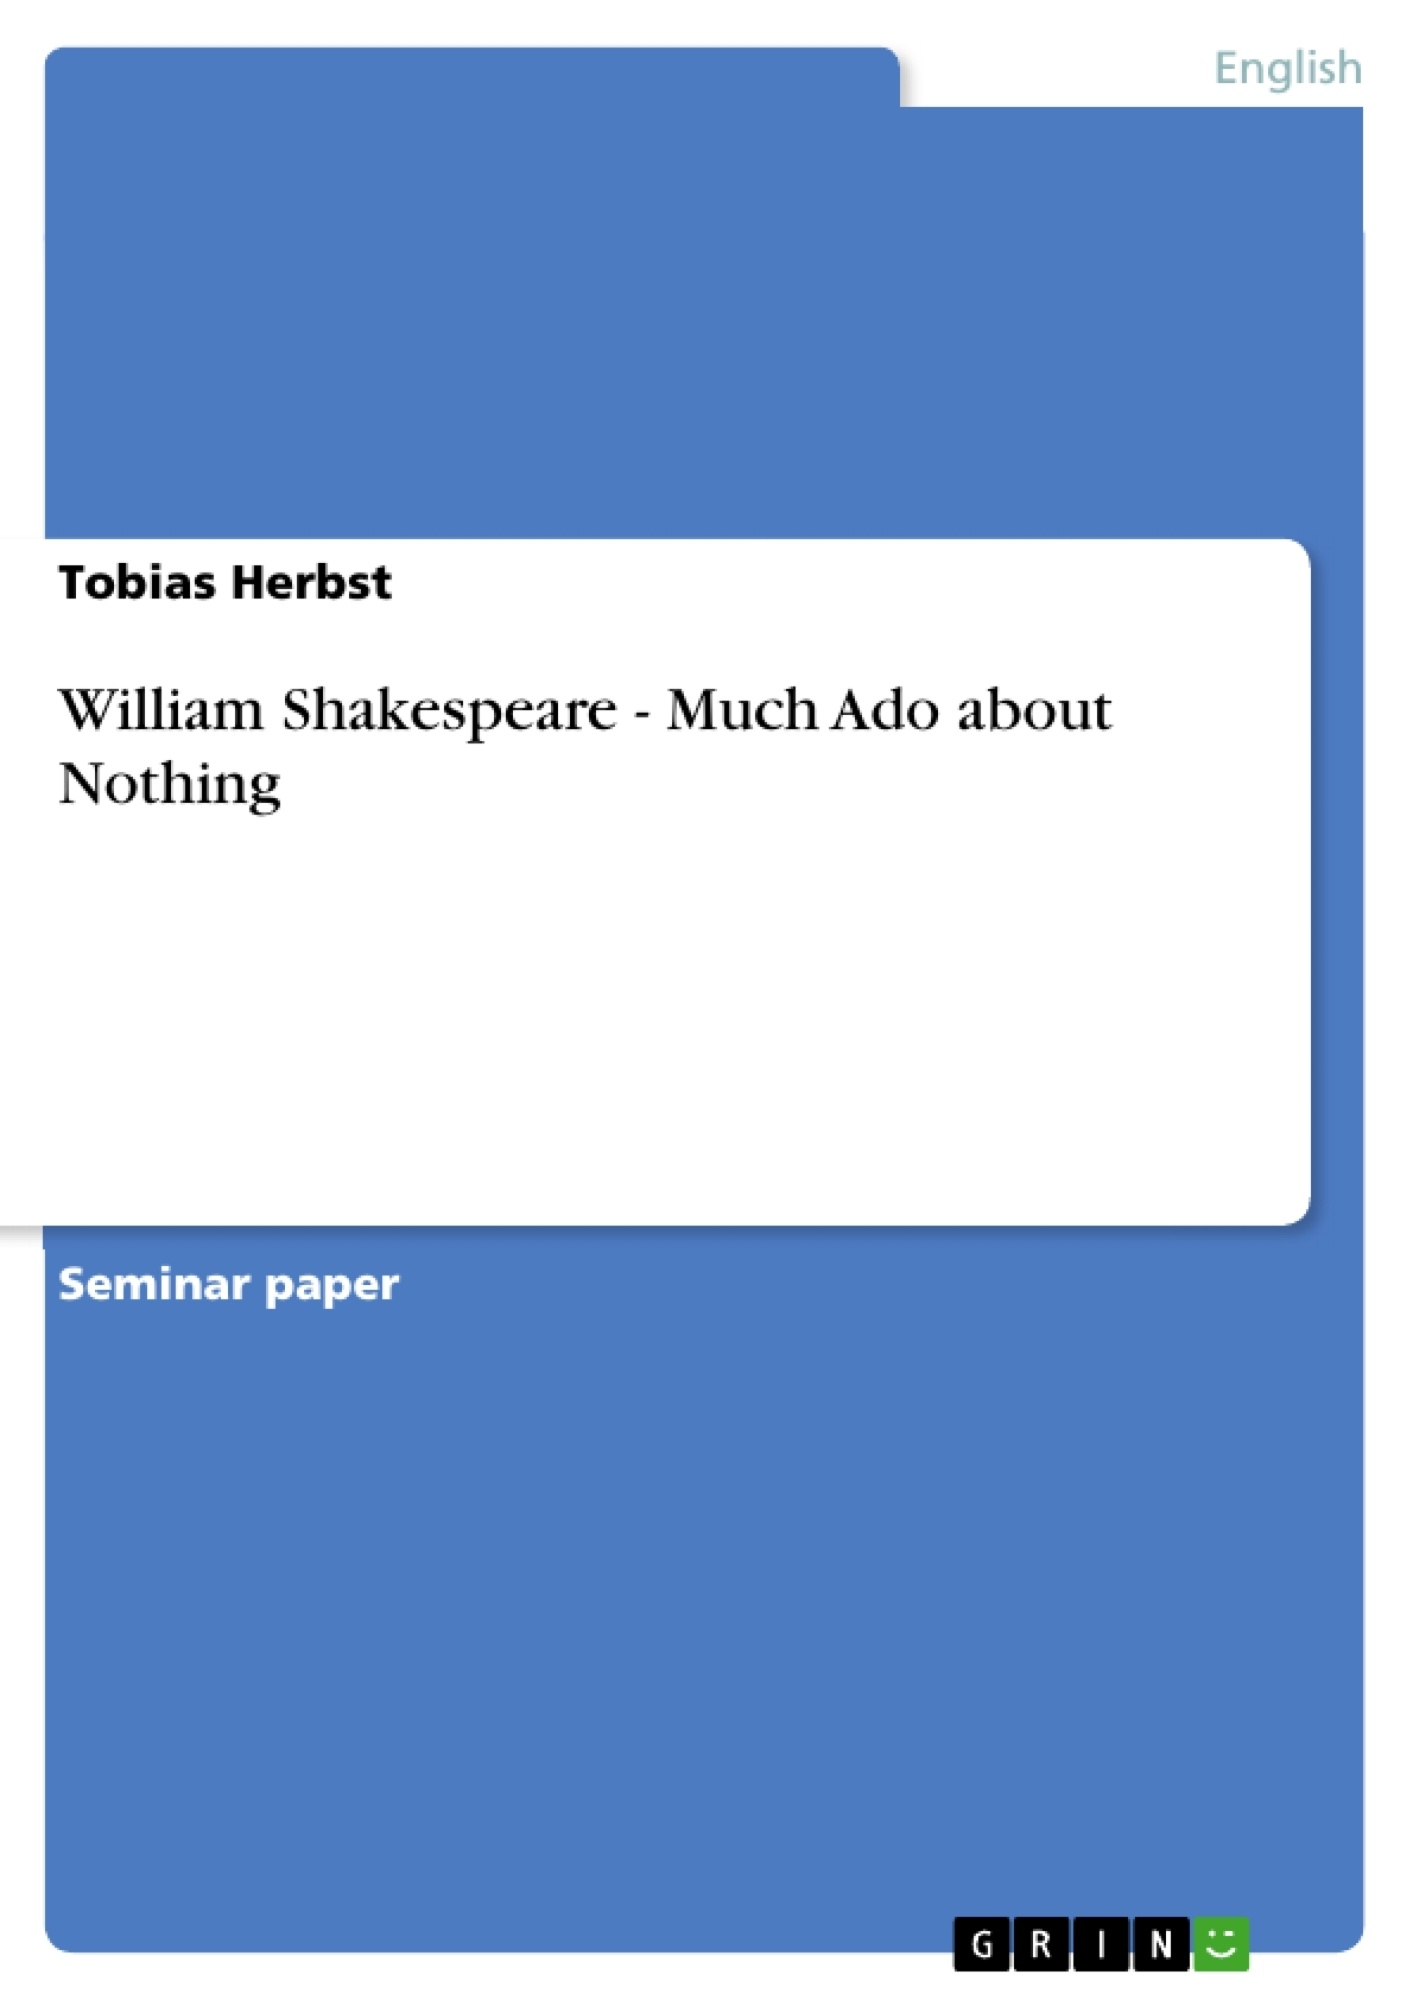 Title: William Shakespeare - Much Ado about Nothing